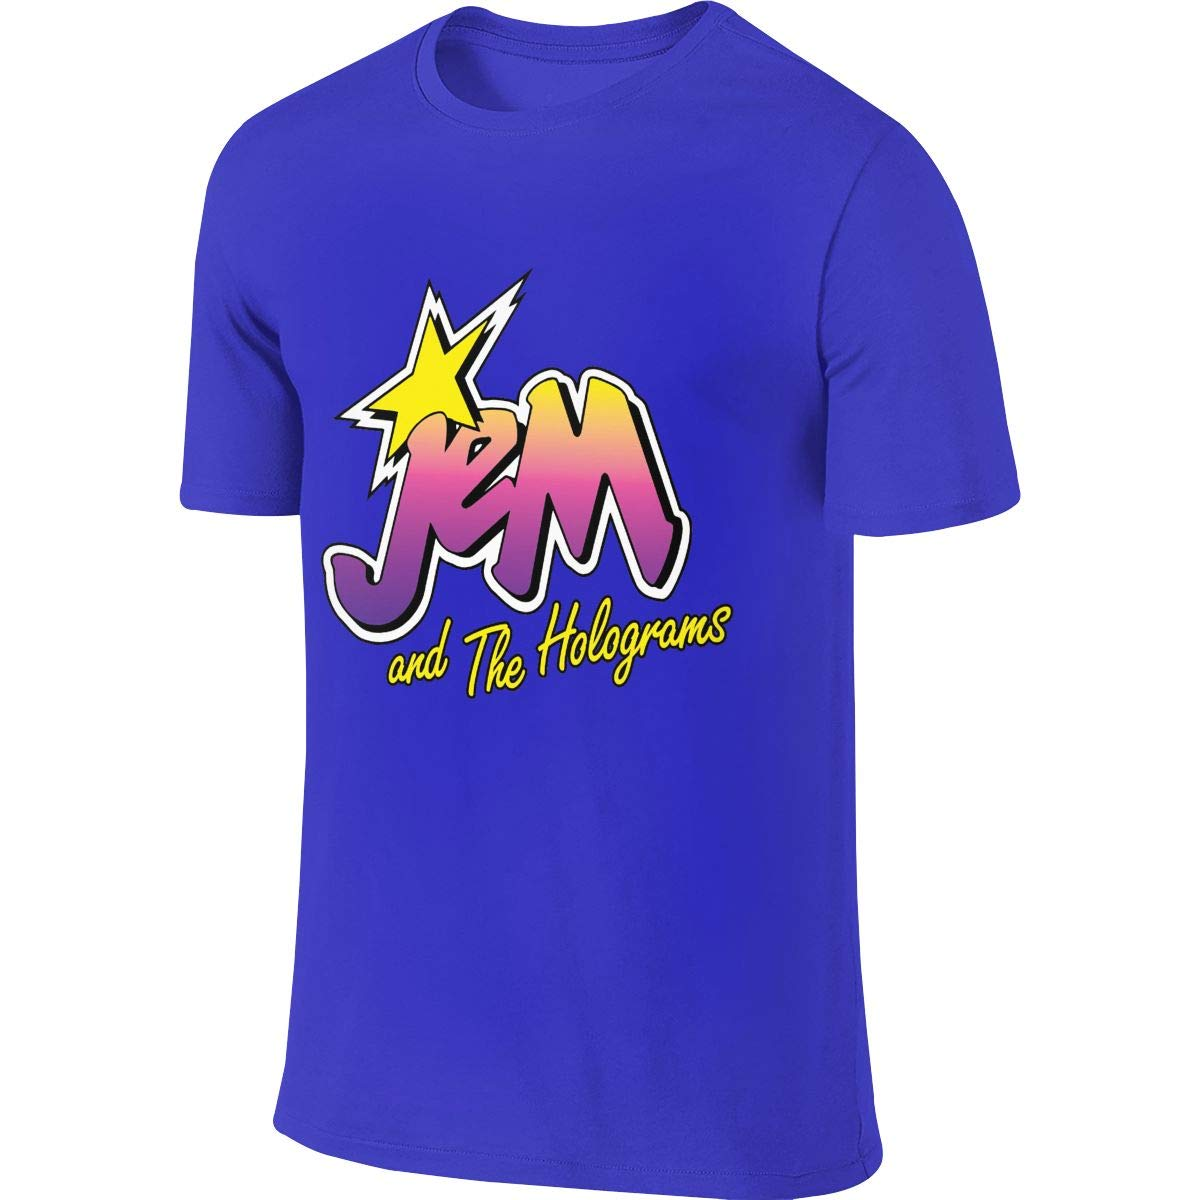 Men's Youth Boys Jem and The Holograms T Shirt T-Shirt Summer Short-Sleeve Round Neck Shirts Cotton Sport Tops Blue XL